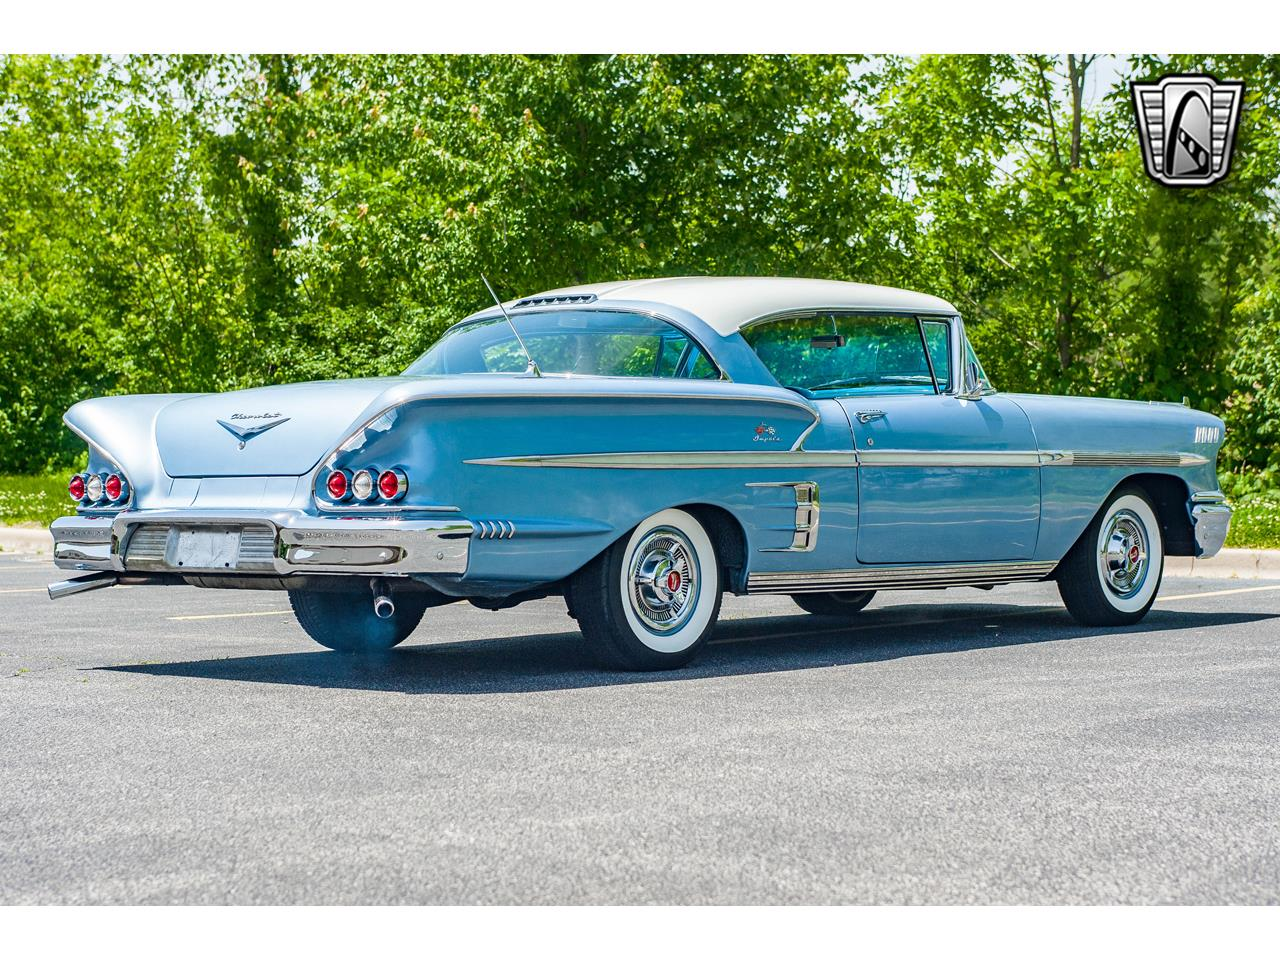 Large Picture of Classic '58 Impala located in O'Fallon Illinois - $62,000.00 Offered by Gateway Classic Cars - St. Louis - QB9Q